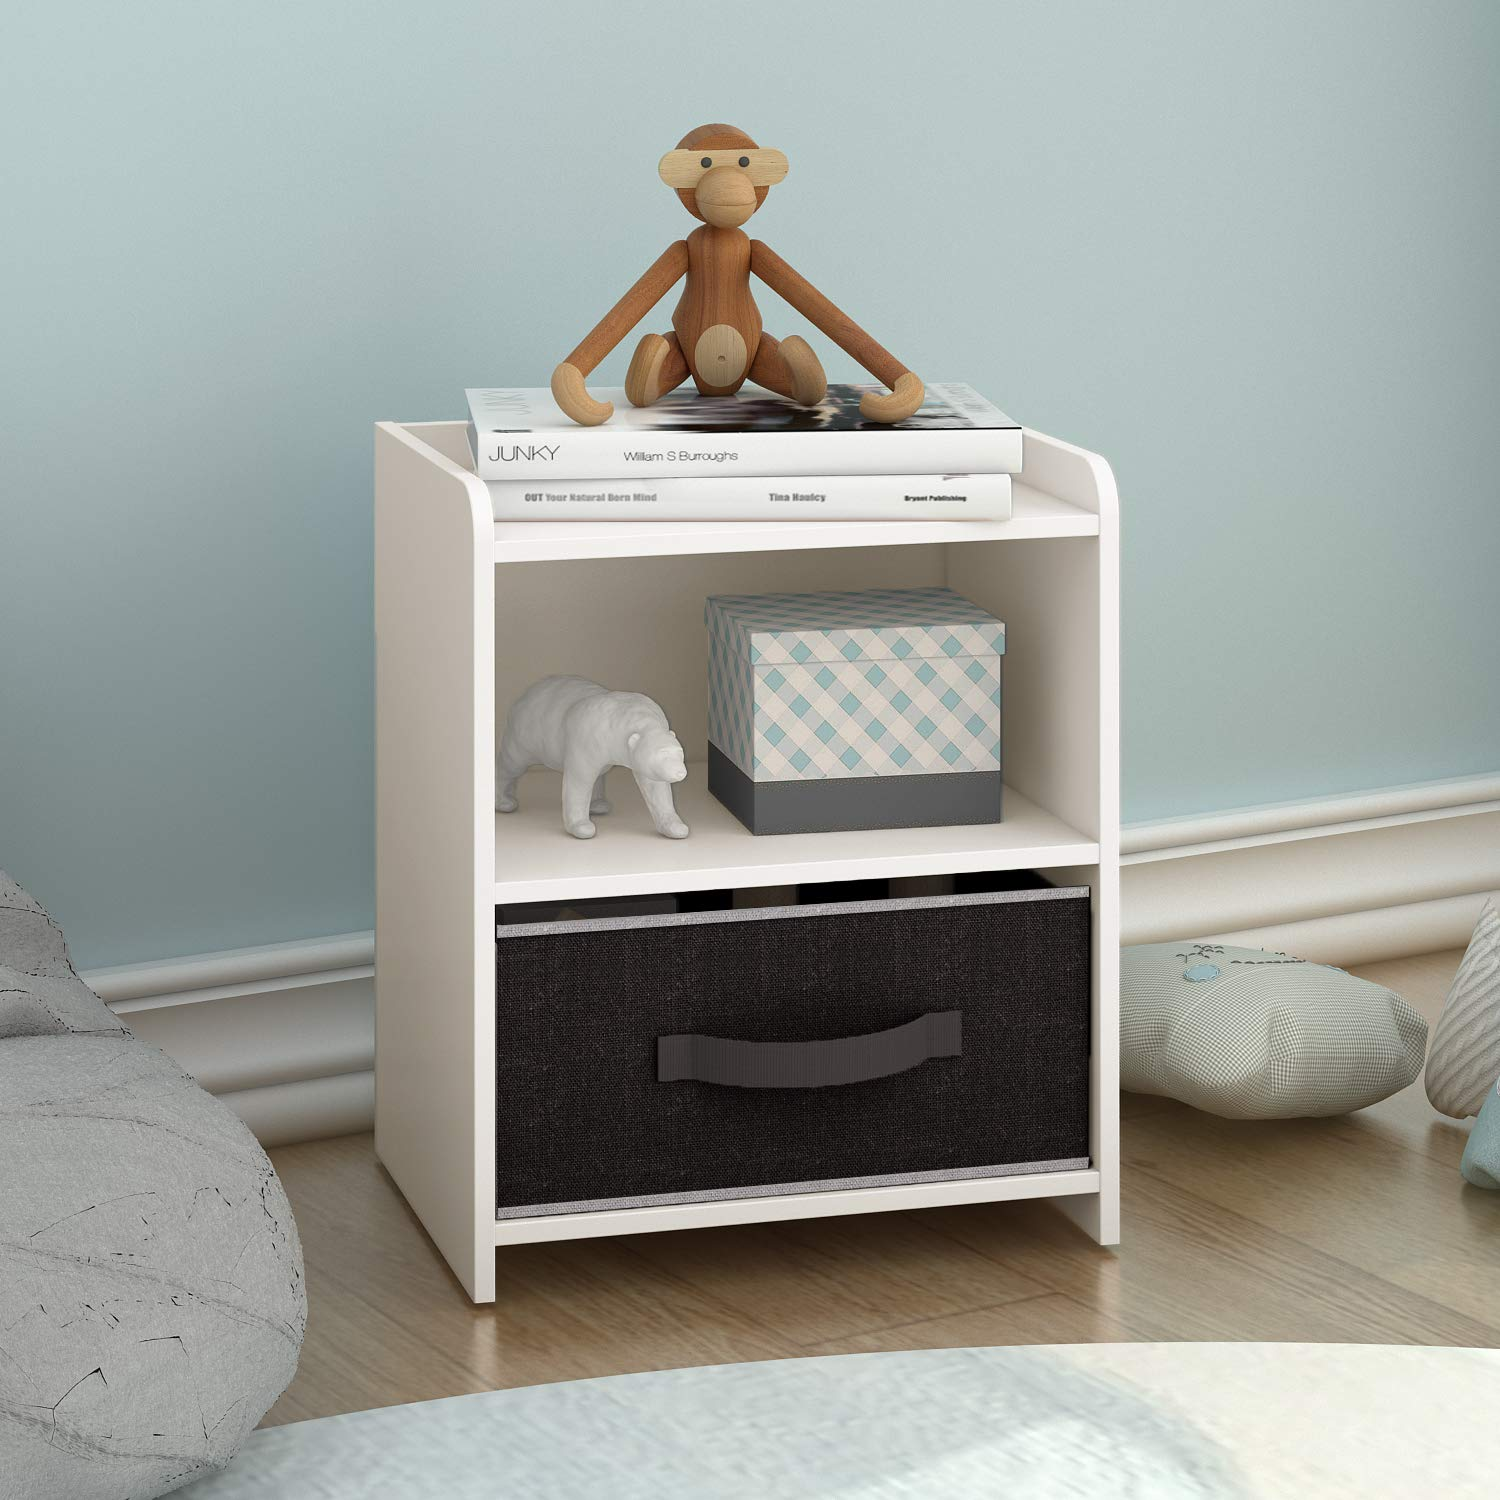 DEVAISE Wood Nightstand Organizer/Bedside Table with Storage Shelf for Bedroom, White by DEVAISE